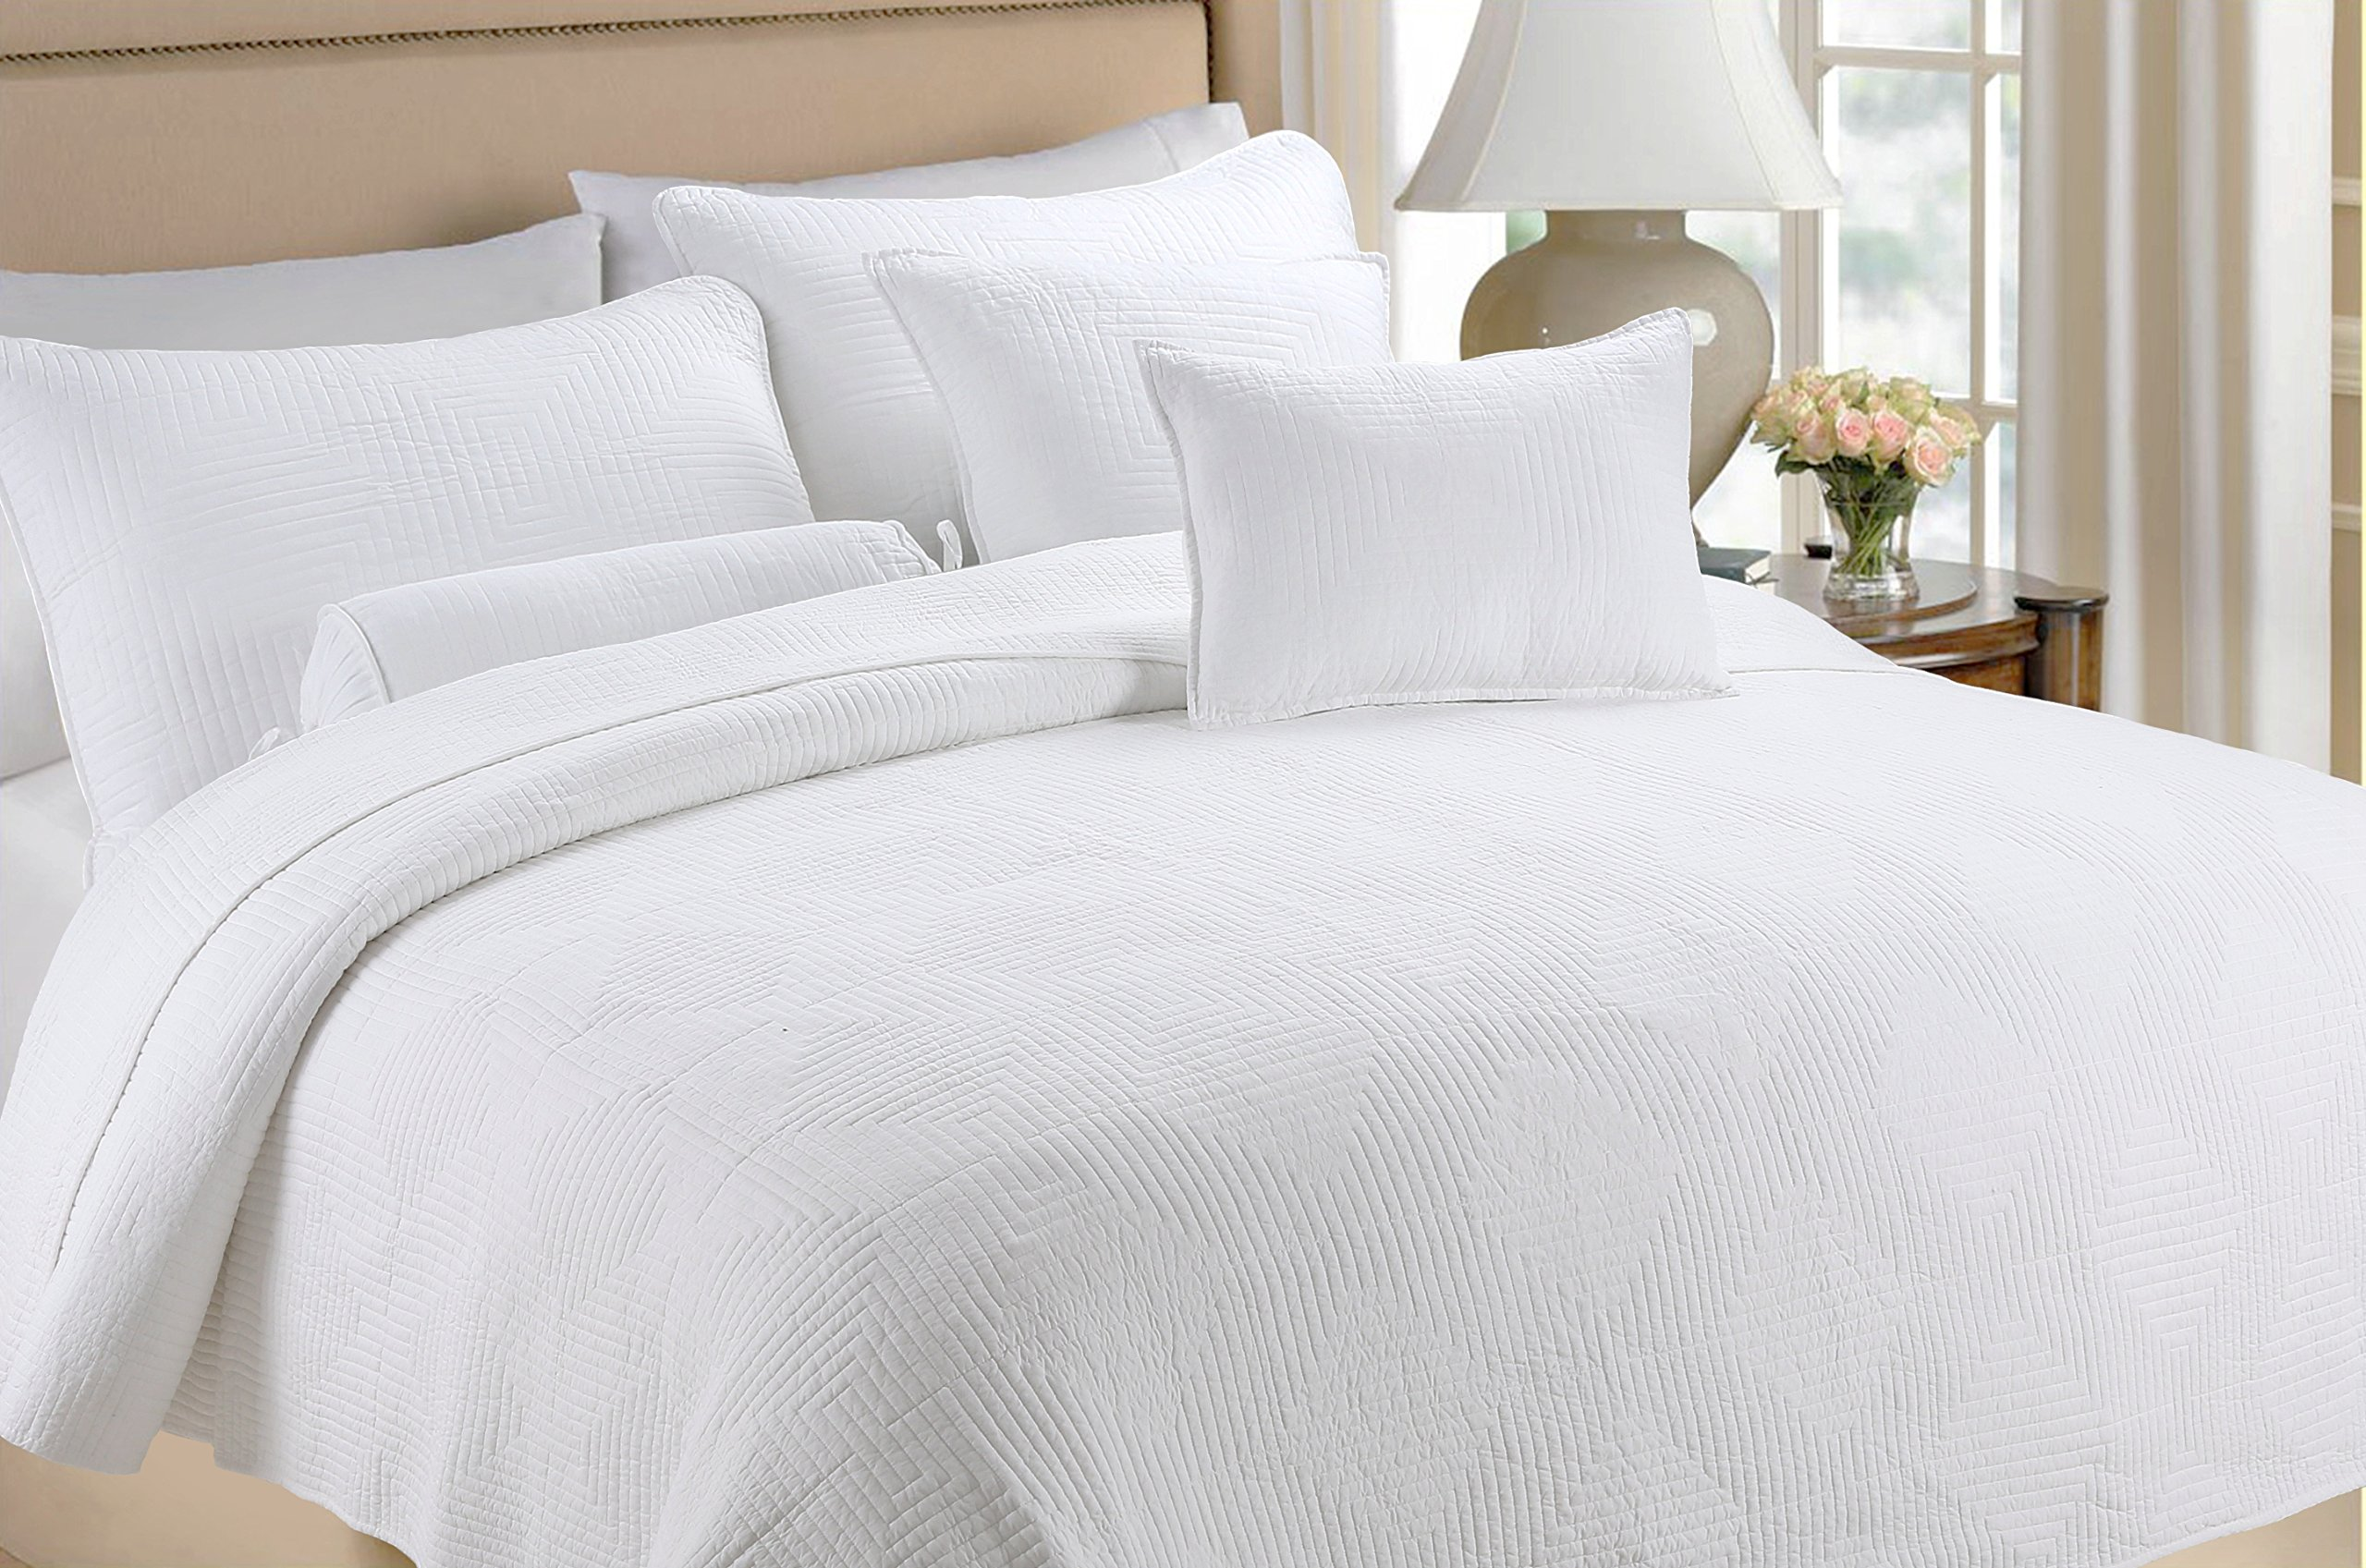 Cozy Line Home Fashions 100% COTTON Solid White Maze Hotel Quilt Set, Reversible Bedding Bedspread Coverlet,For Bedroom/Guestroom(Maze - White, King - 3 piece)